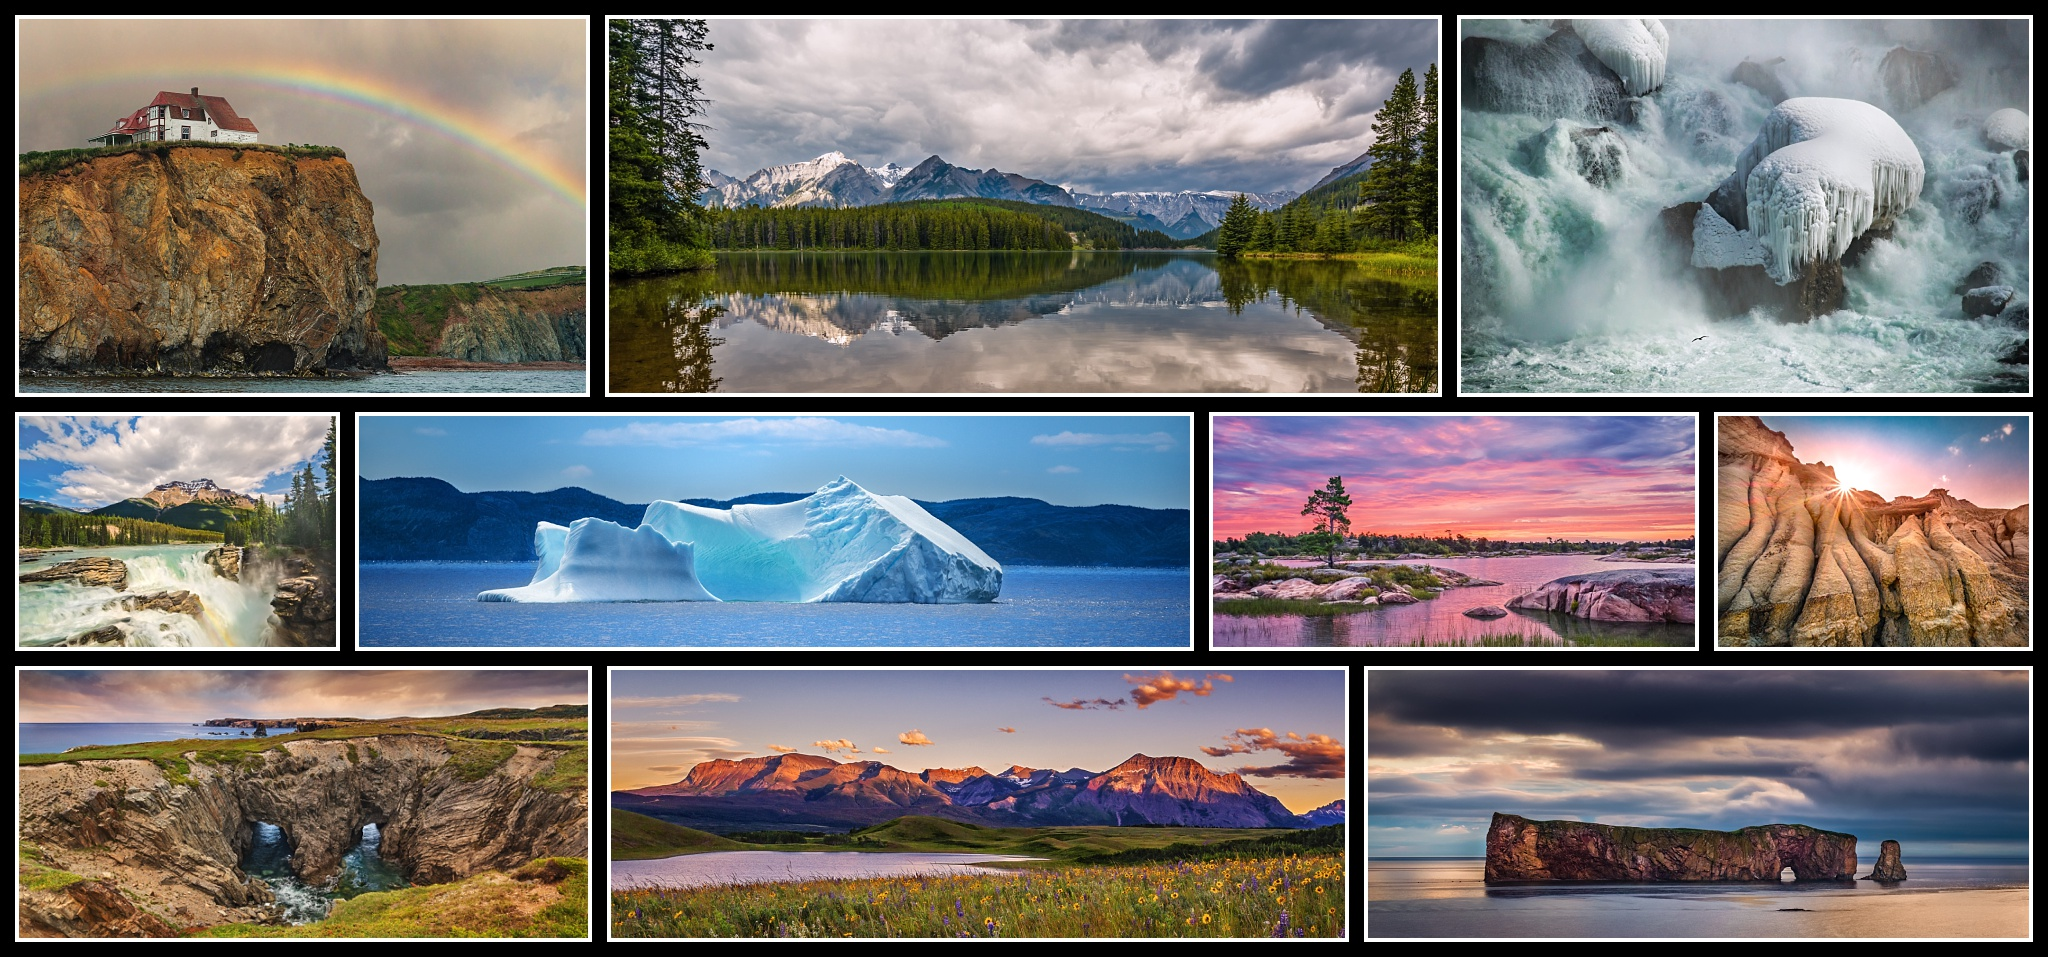 Pictorial/Scenic Photography 2015 - The 10 Accepted images in my Pictorial/Scenic Accreditation.